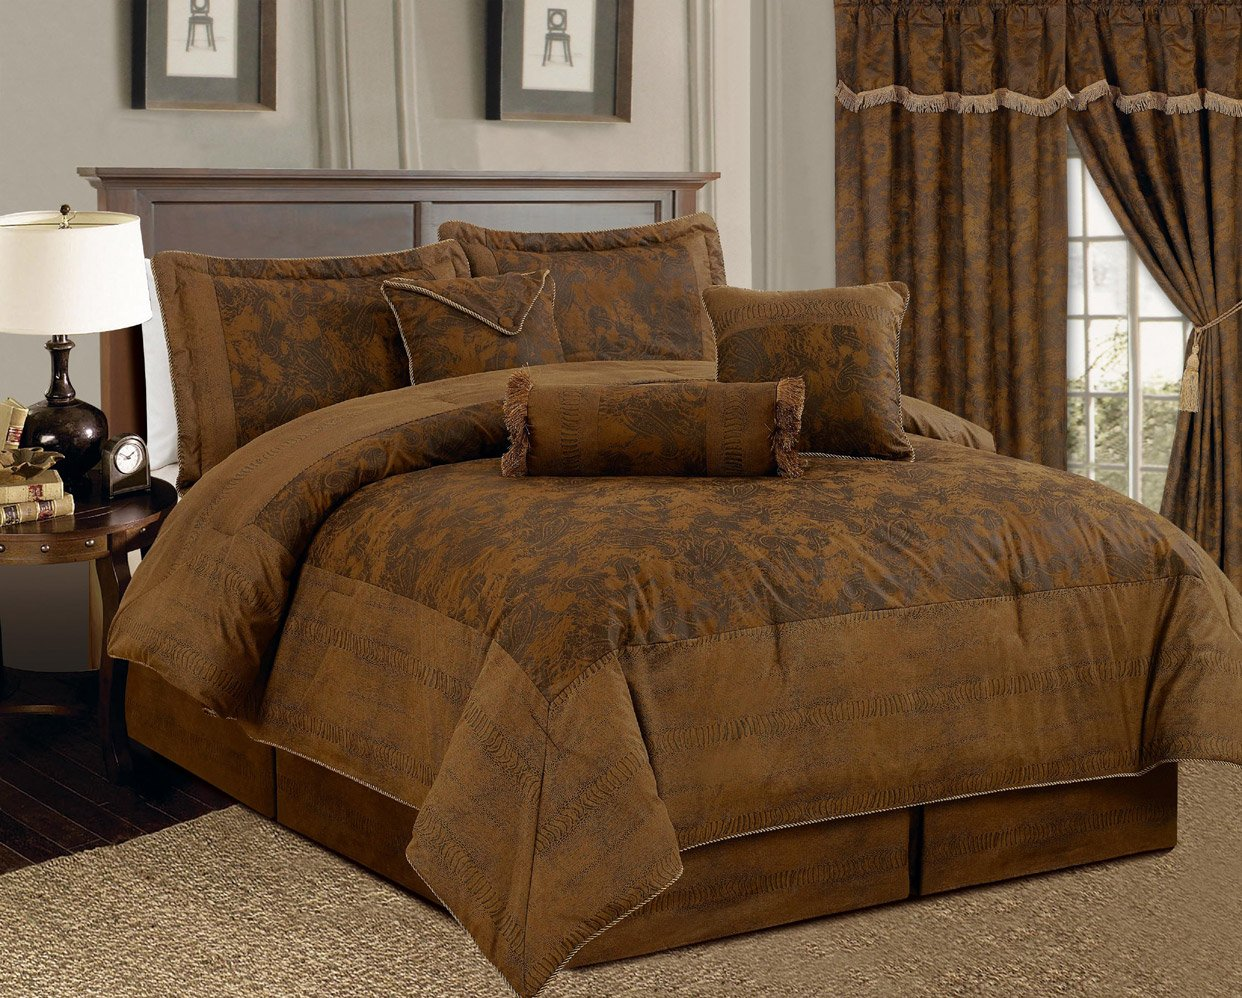 Amazoncom 7 Piece Dark Camel Brown Lavish Oversize 106X 94